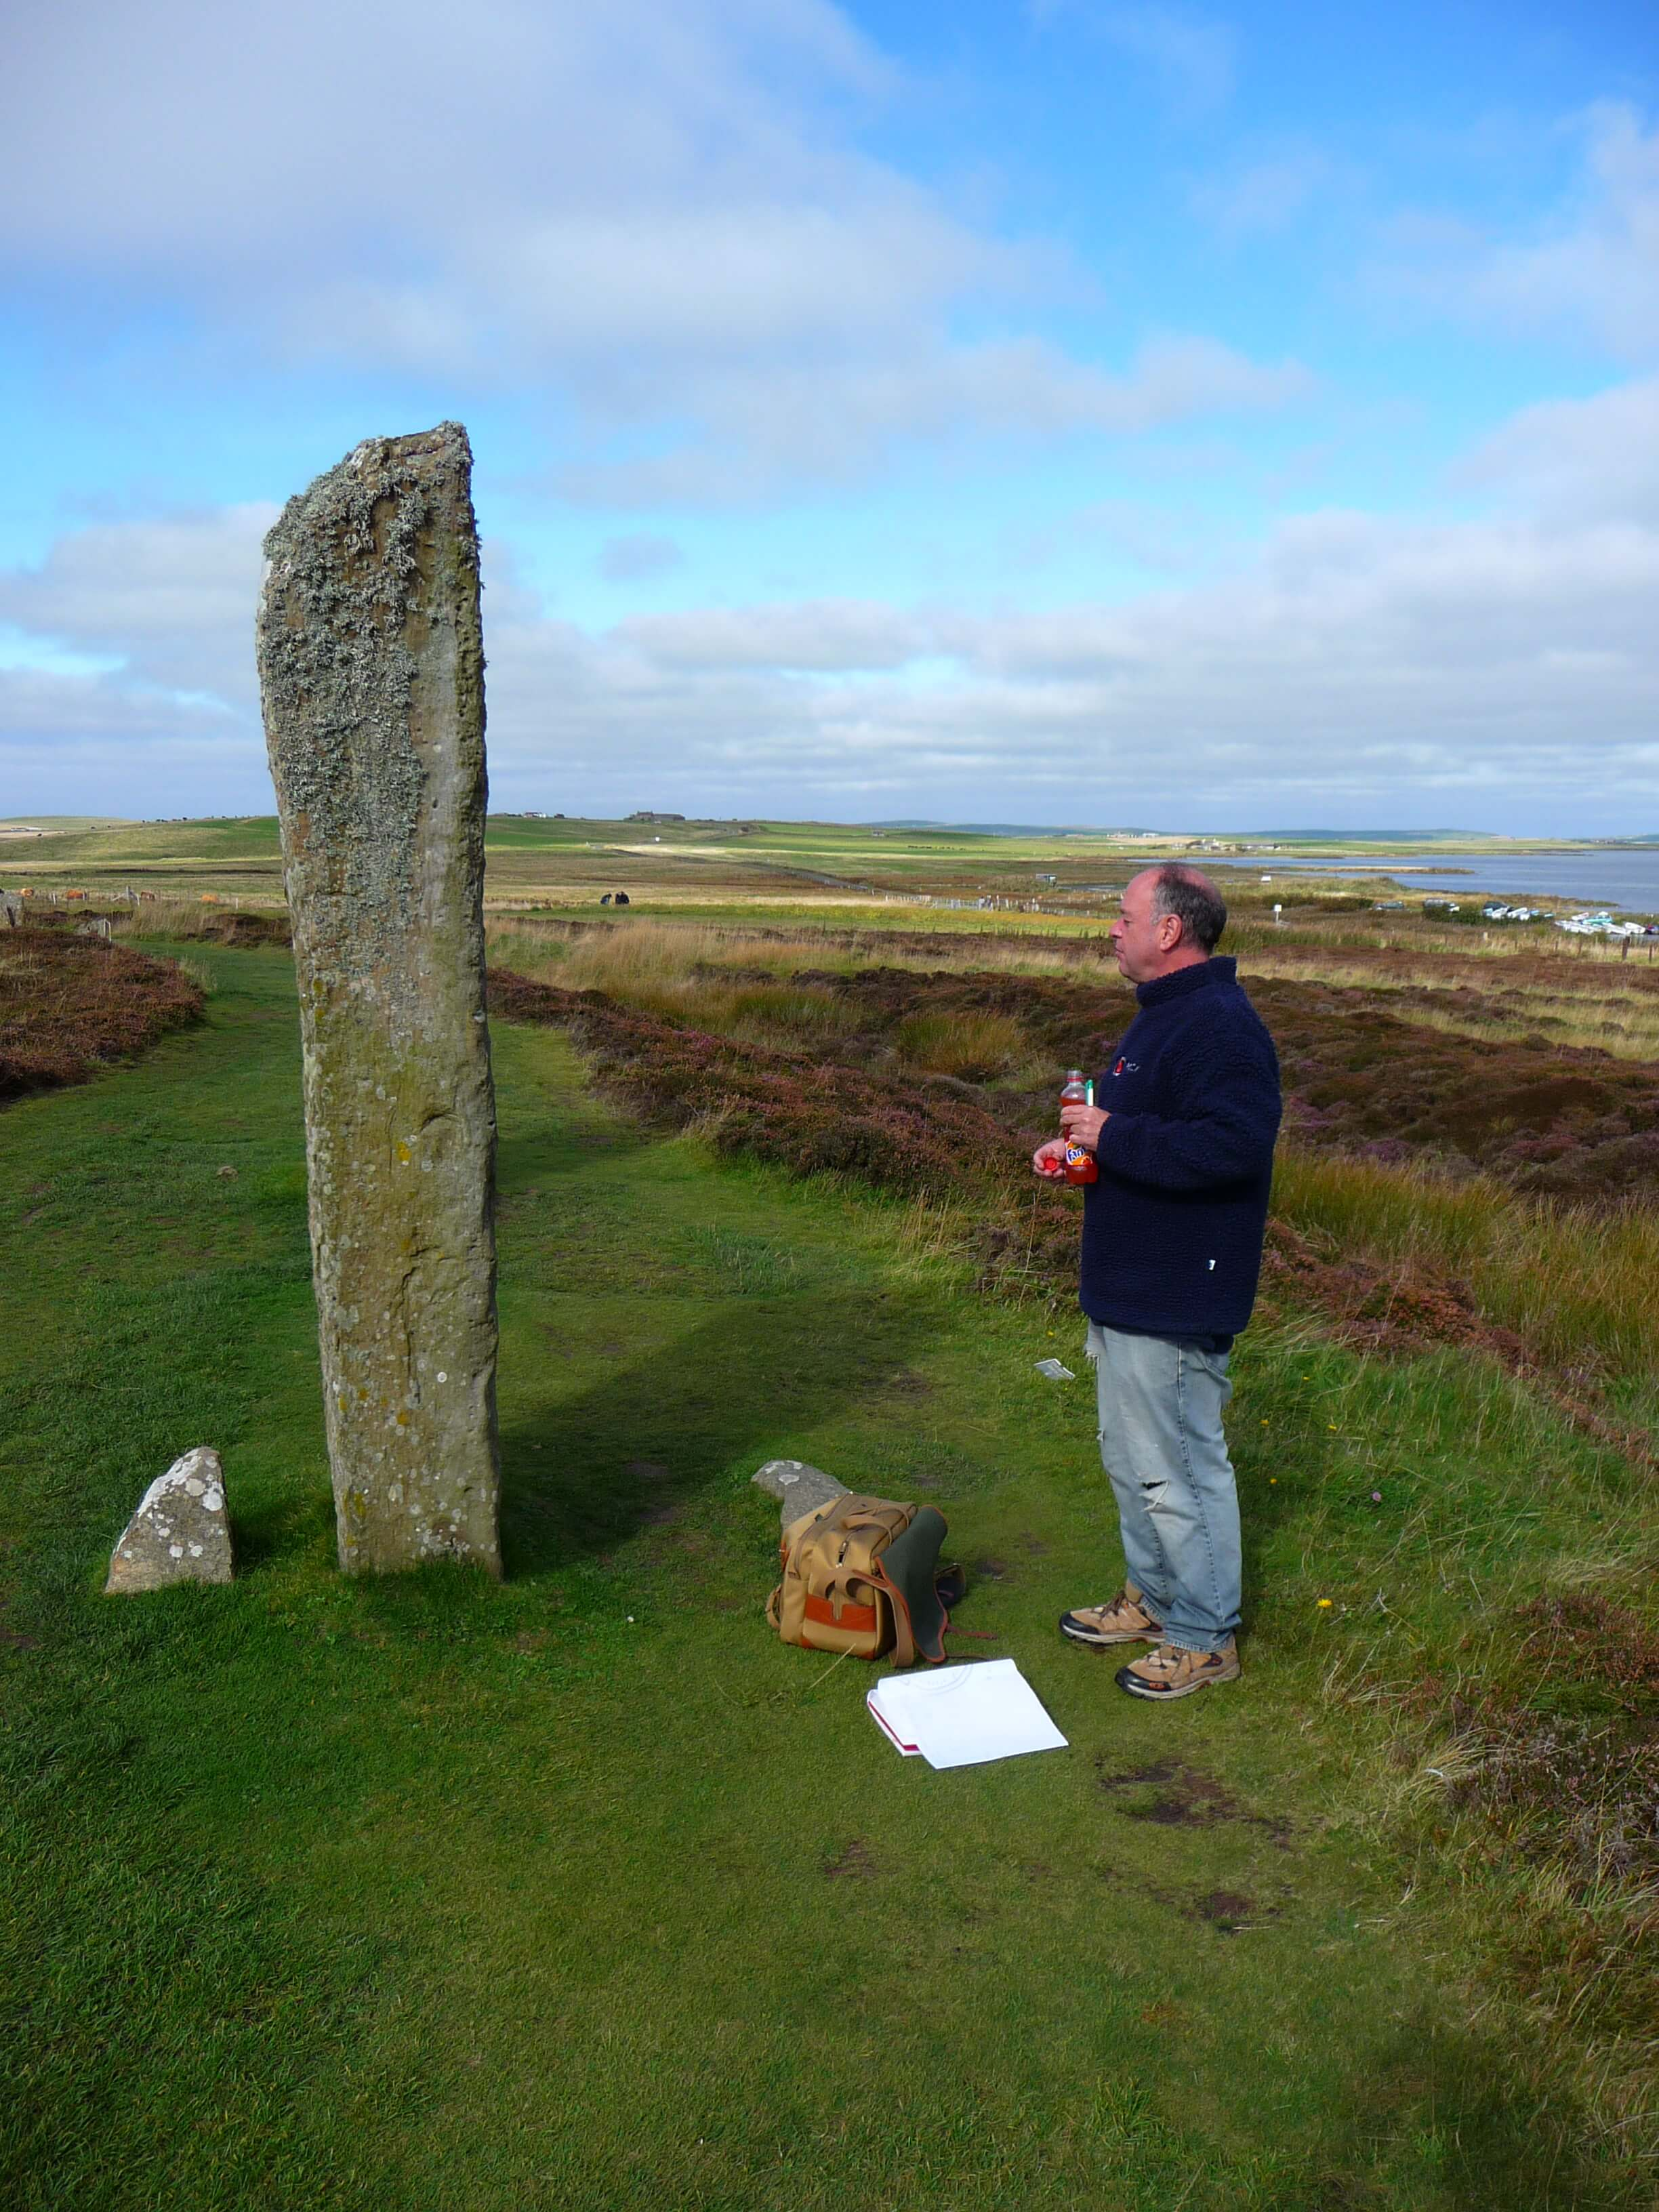 Prominent archaeologist Colin Richards at the Ring of Brodgar standing stones, Orkney Islands, Scotland, UK. Orkneyology.com